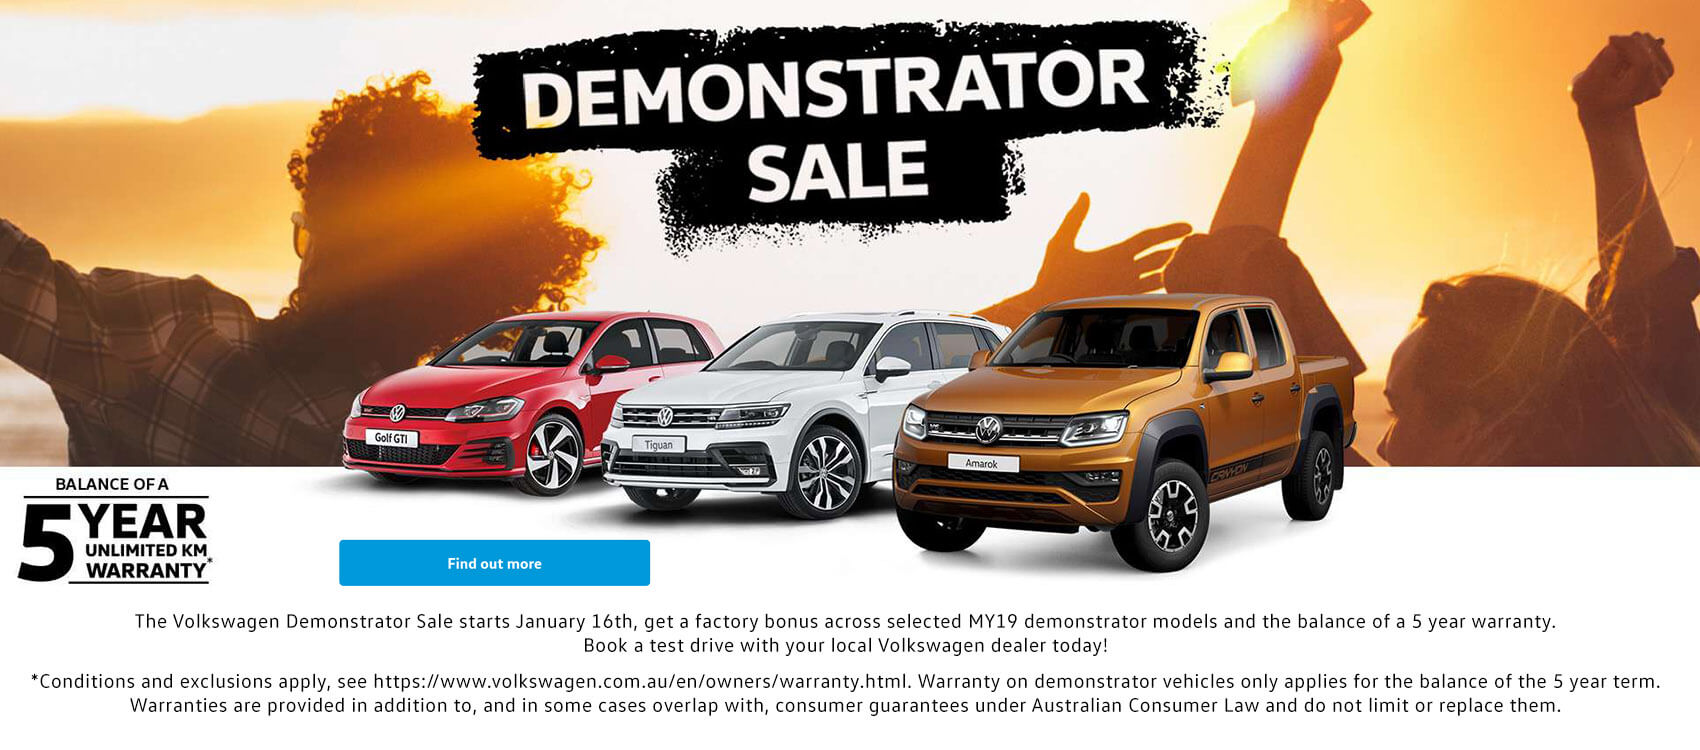 The Volkswagen Demonstrator Sale starts January 16th, get a factory bonus across selected MY19 demonstrator models and the balance of a 5 year warranty. Book a test drive with Shepparton Volkswagen